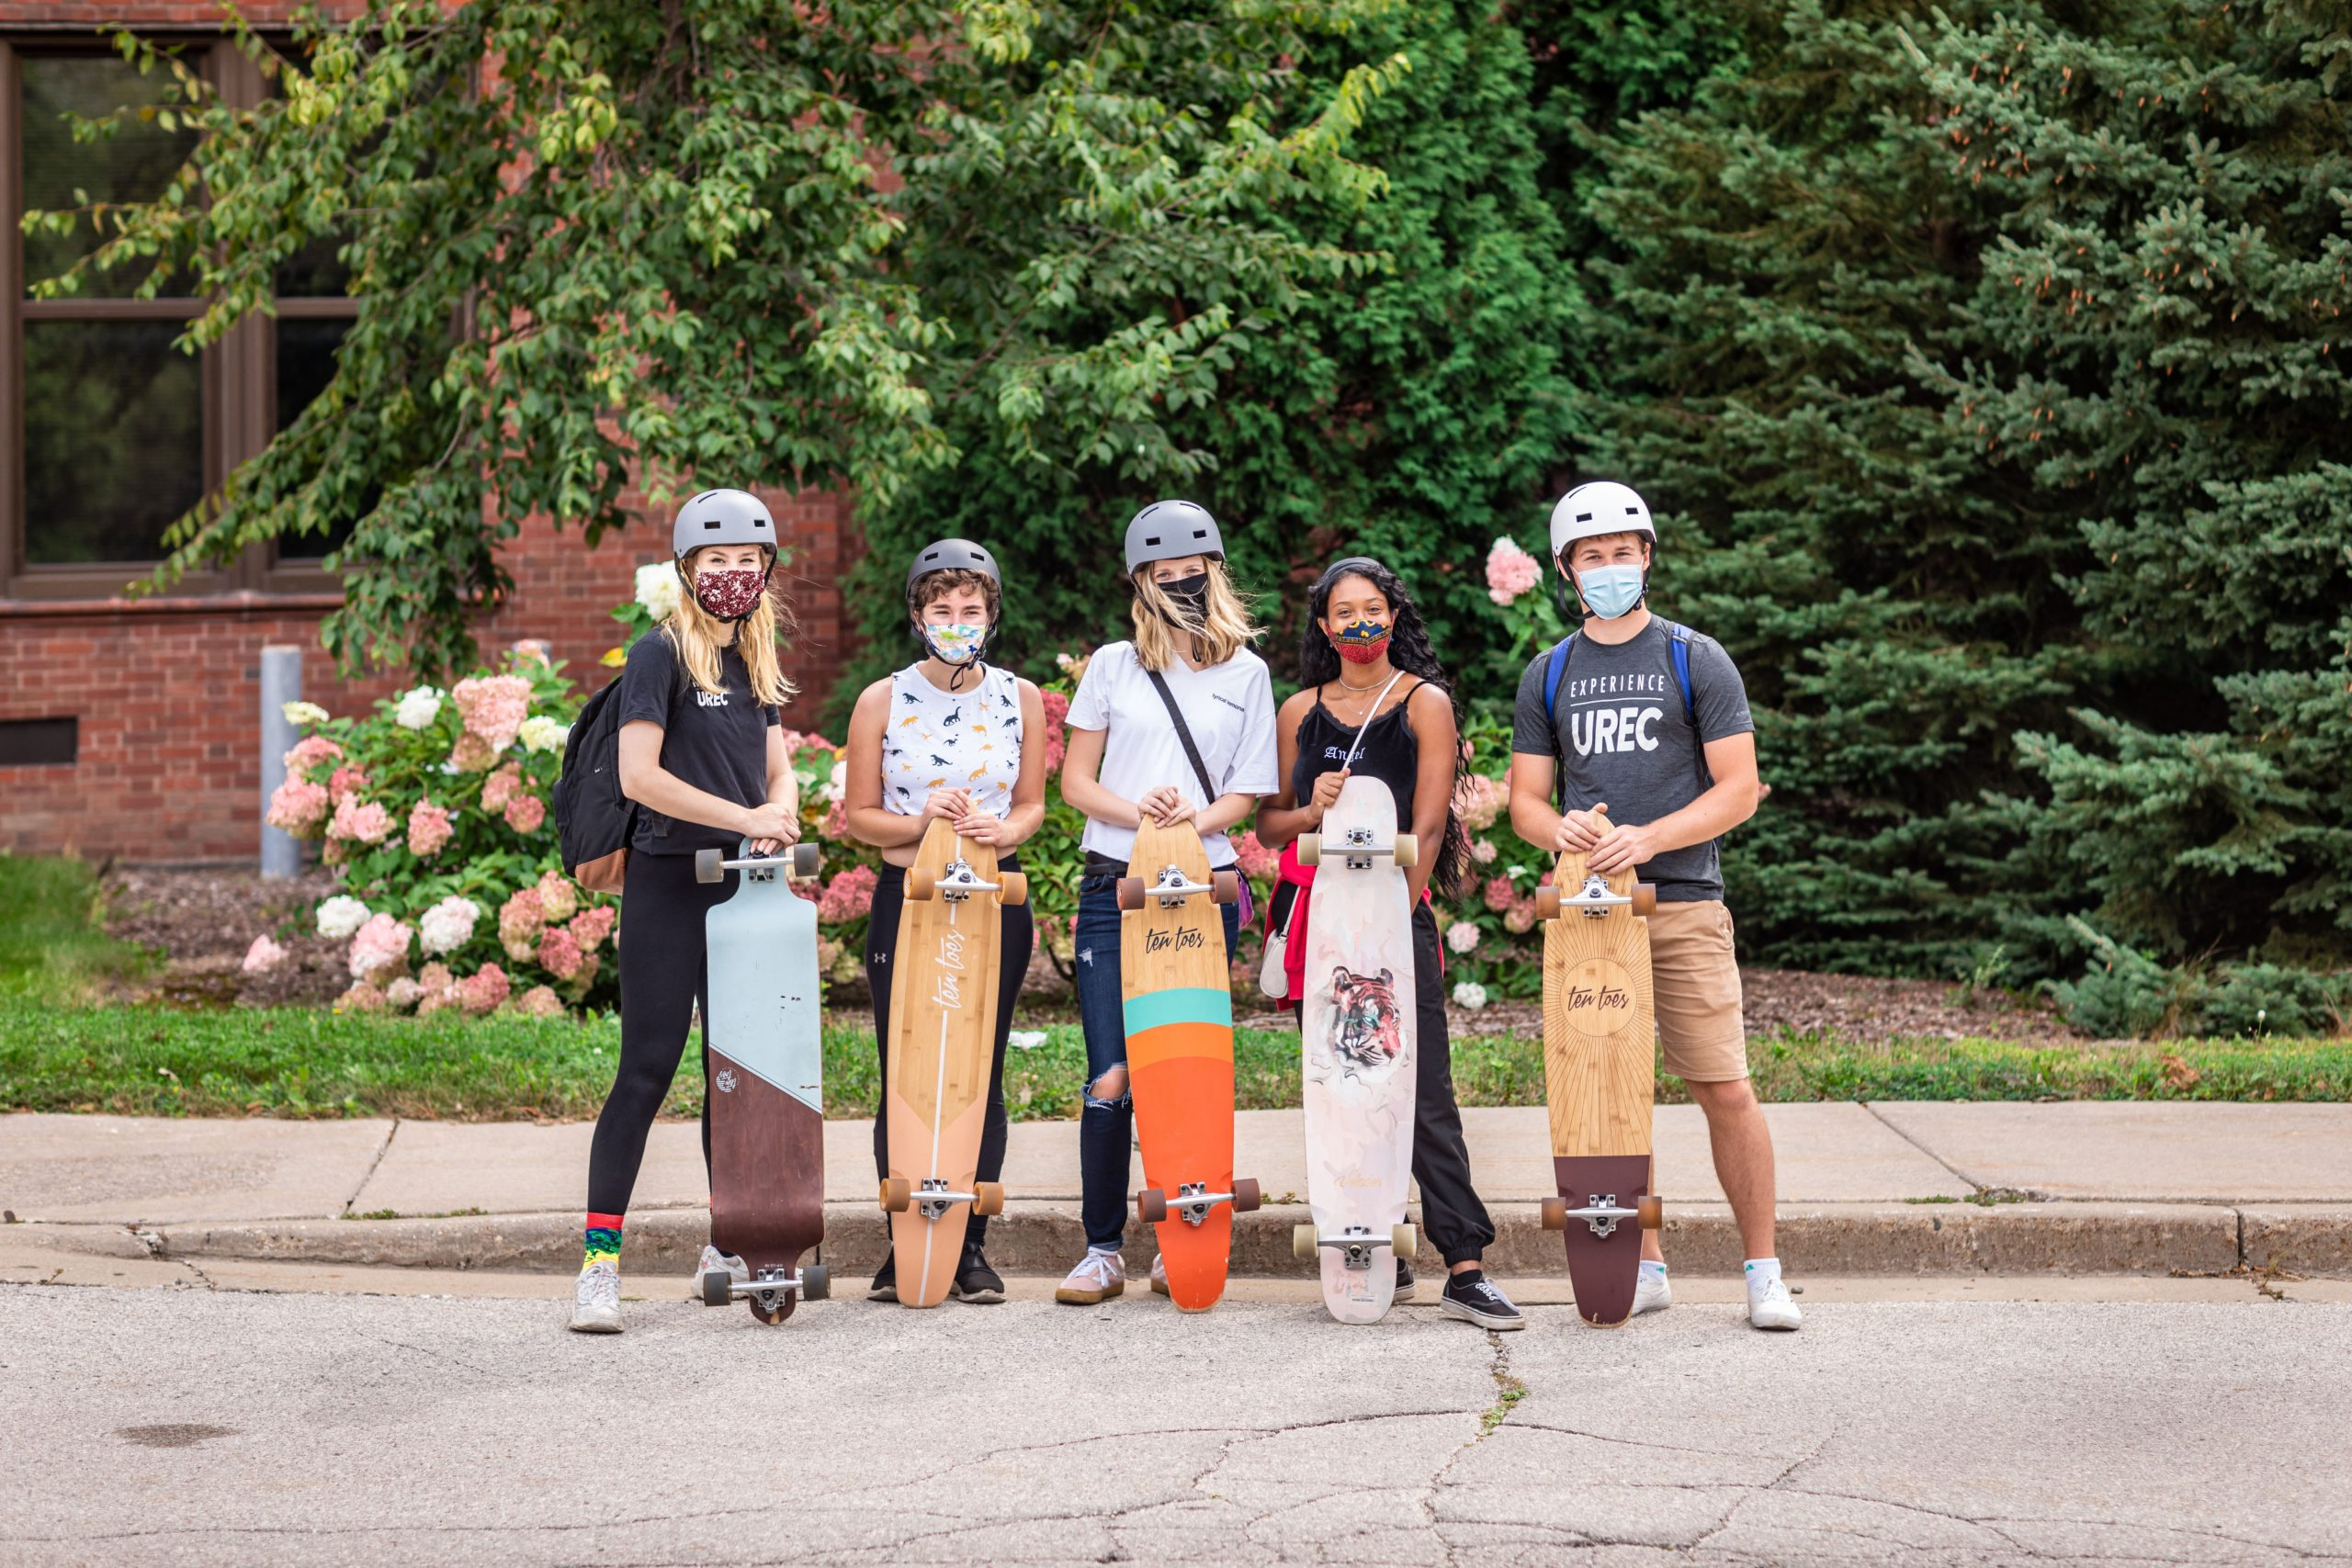 students with longboards